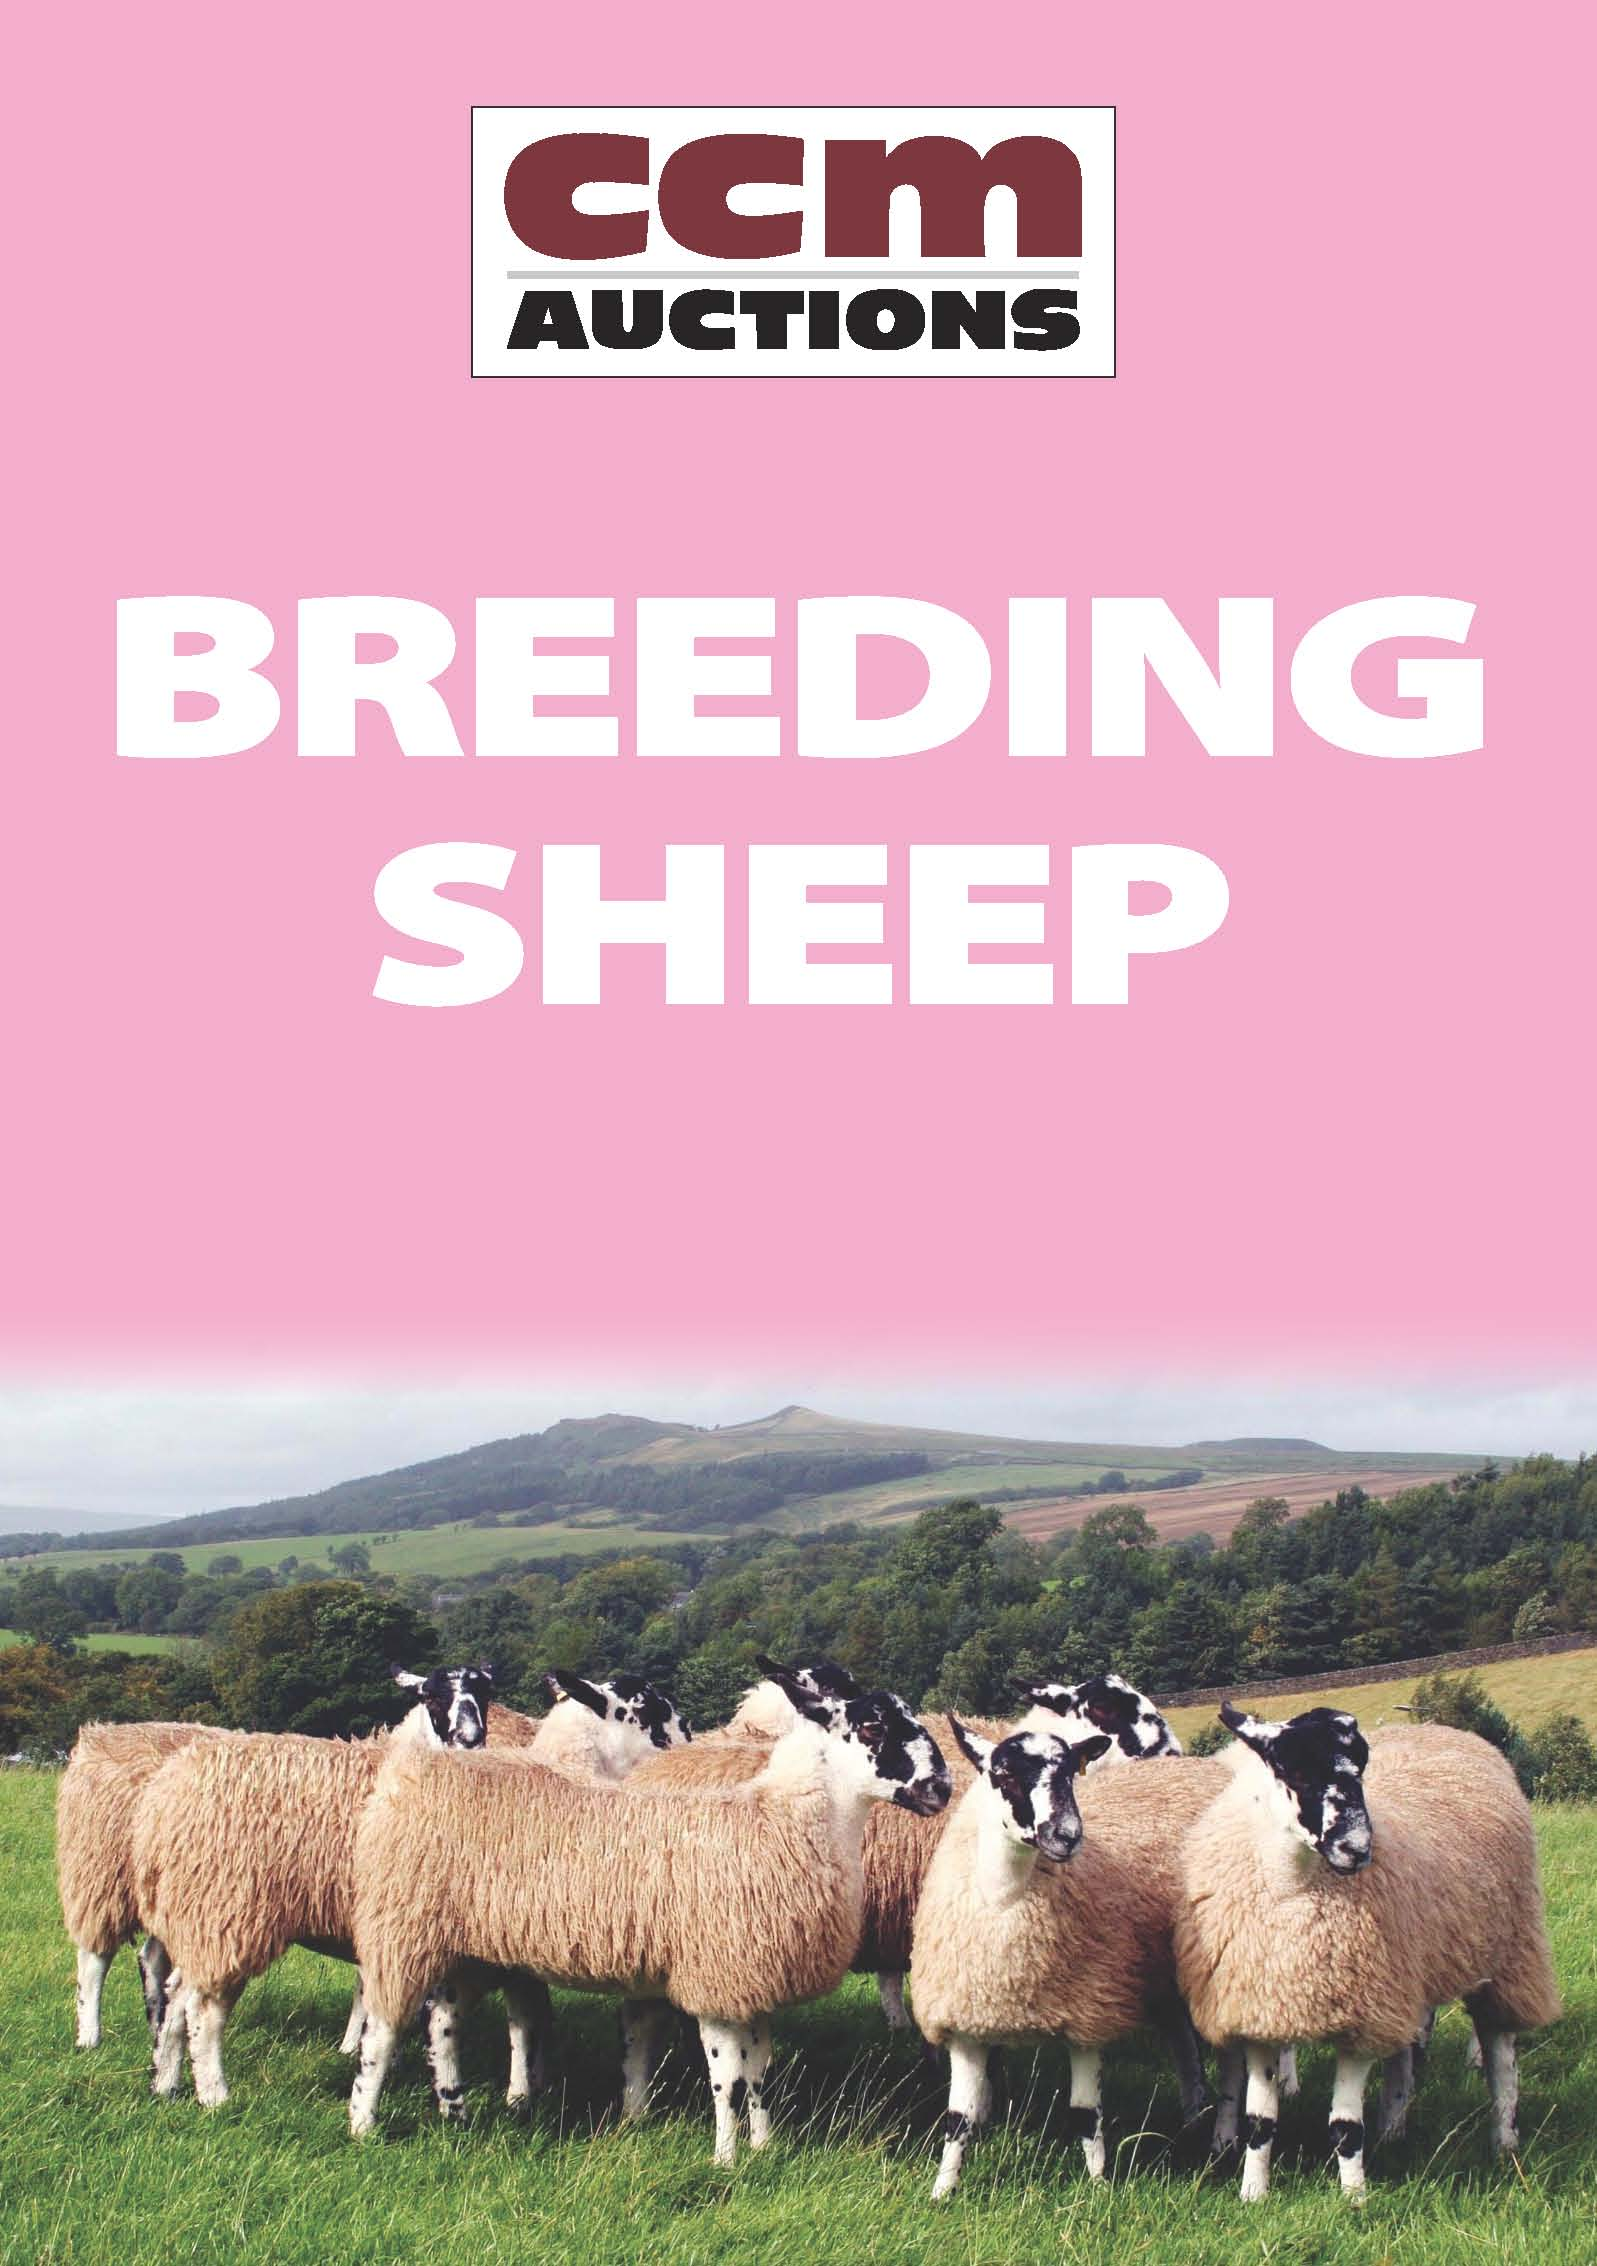 BREEDING SHEEP - MONDAY 30TH MARCH 2015